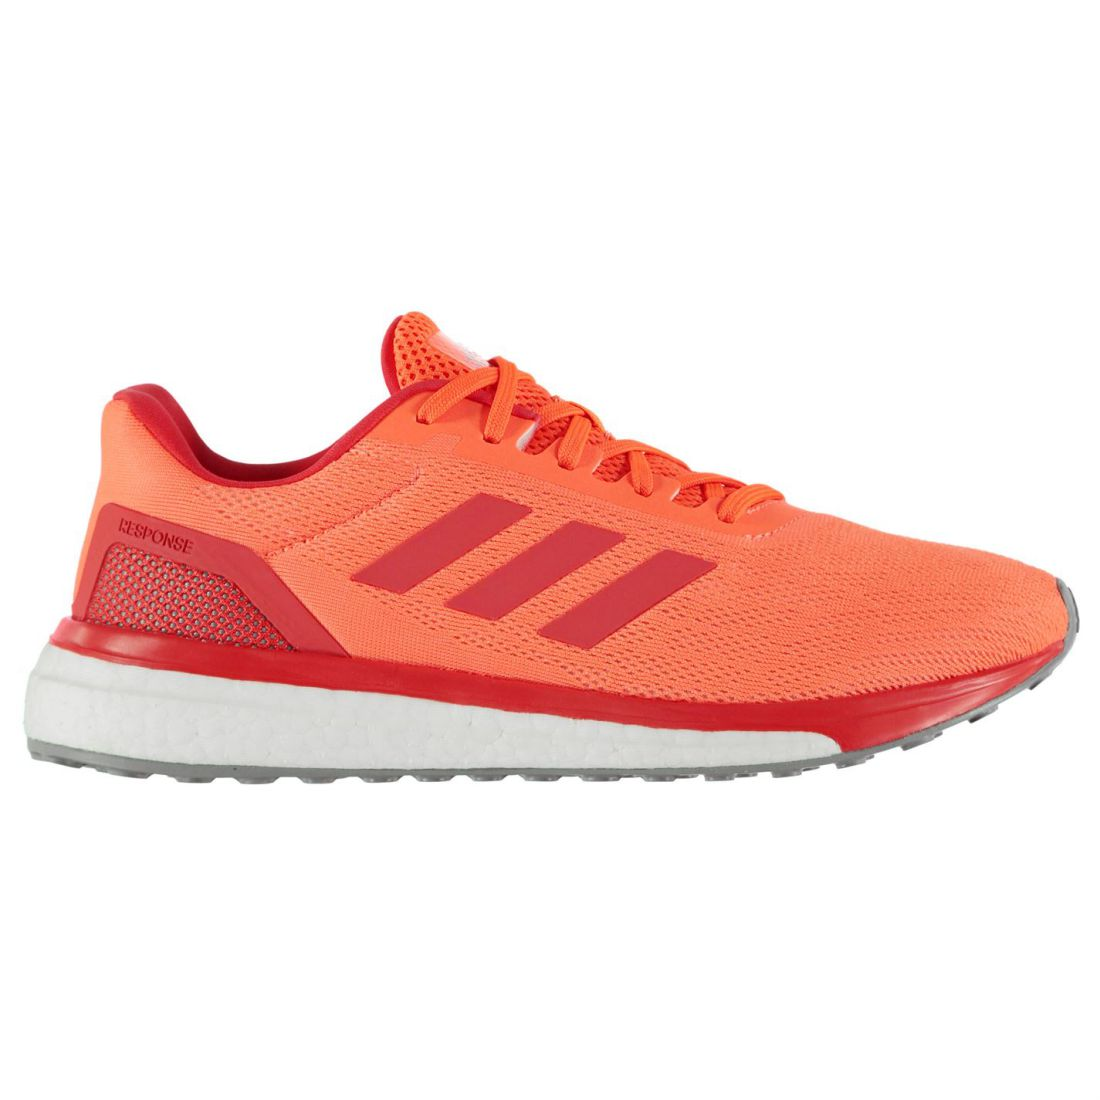 Adidas Response Running shoes Mens Gents Road Ventilated Lightweight Mesh Upper